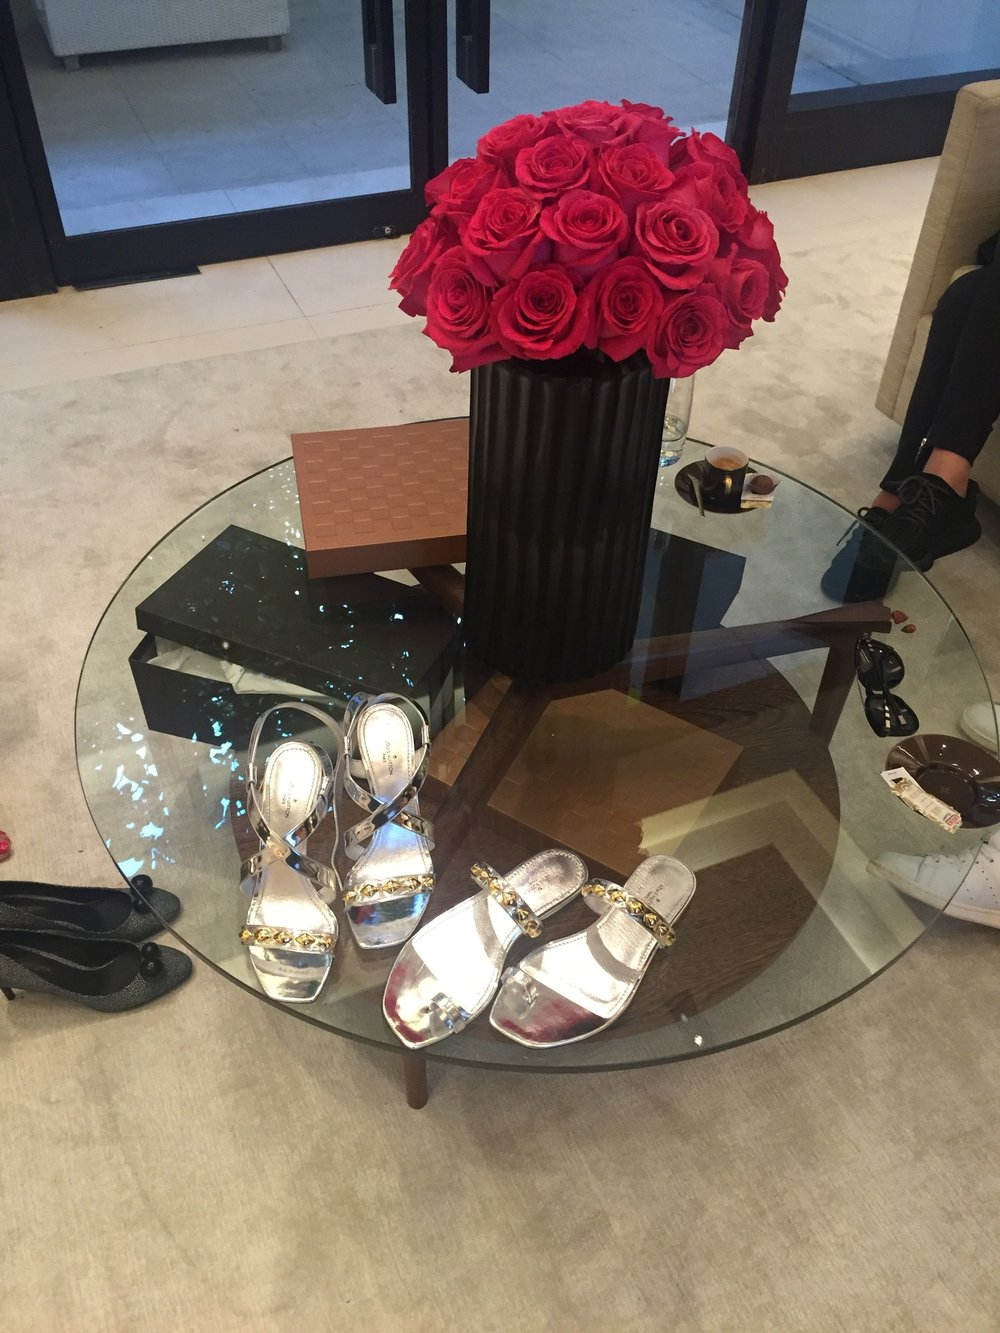 After our spa appointments, we headed to the Louis Vuitton Rio Ipanema store for a little shopping! A few items, like these beautiful sliver shoes, are only available in this store.